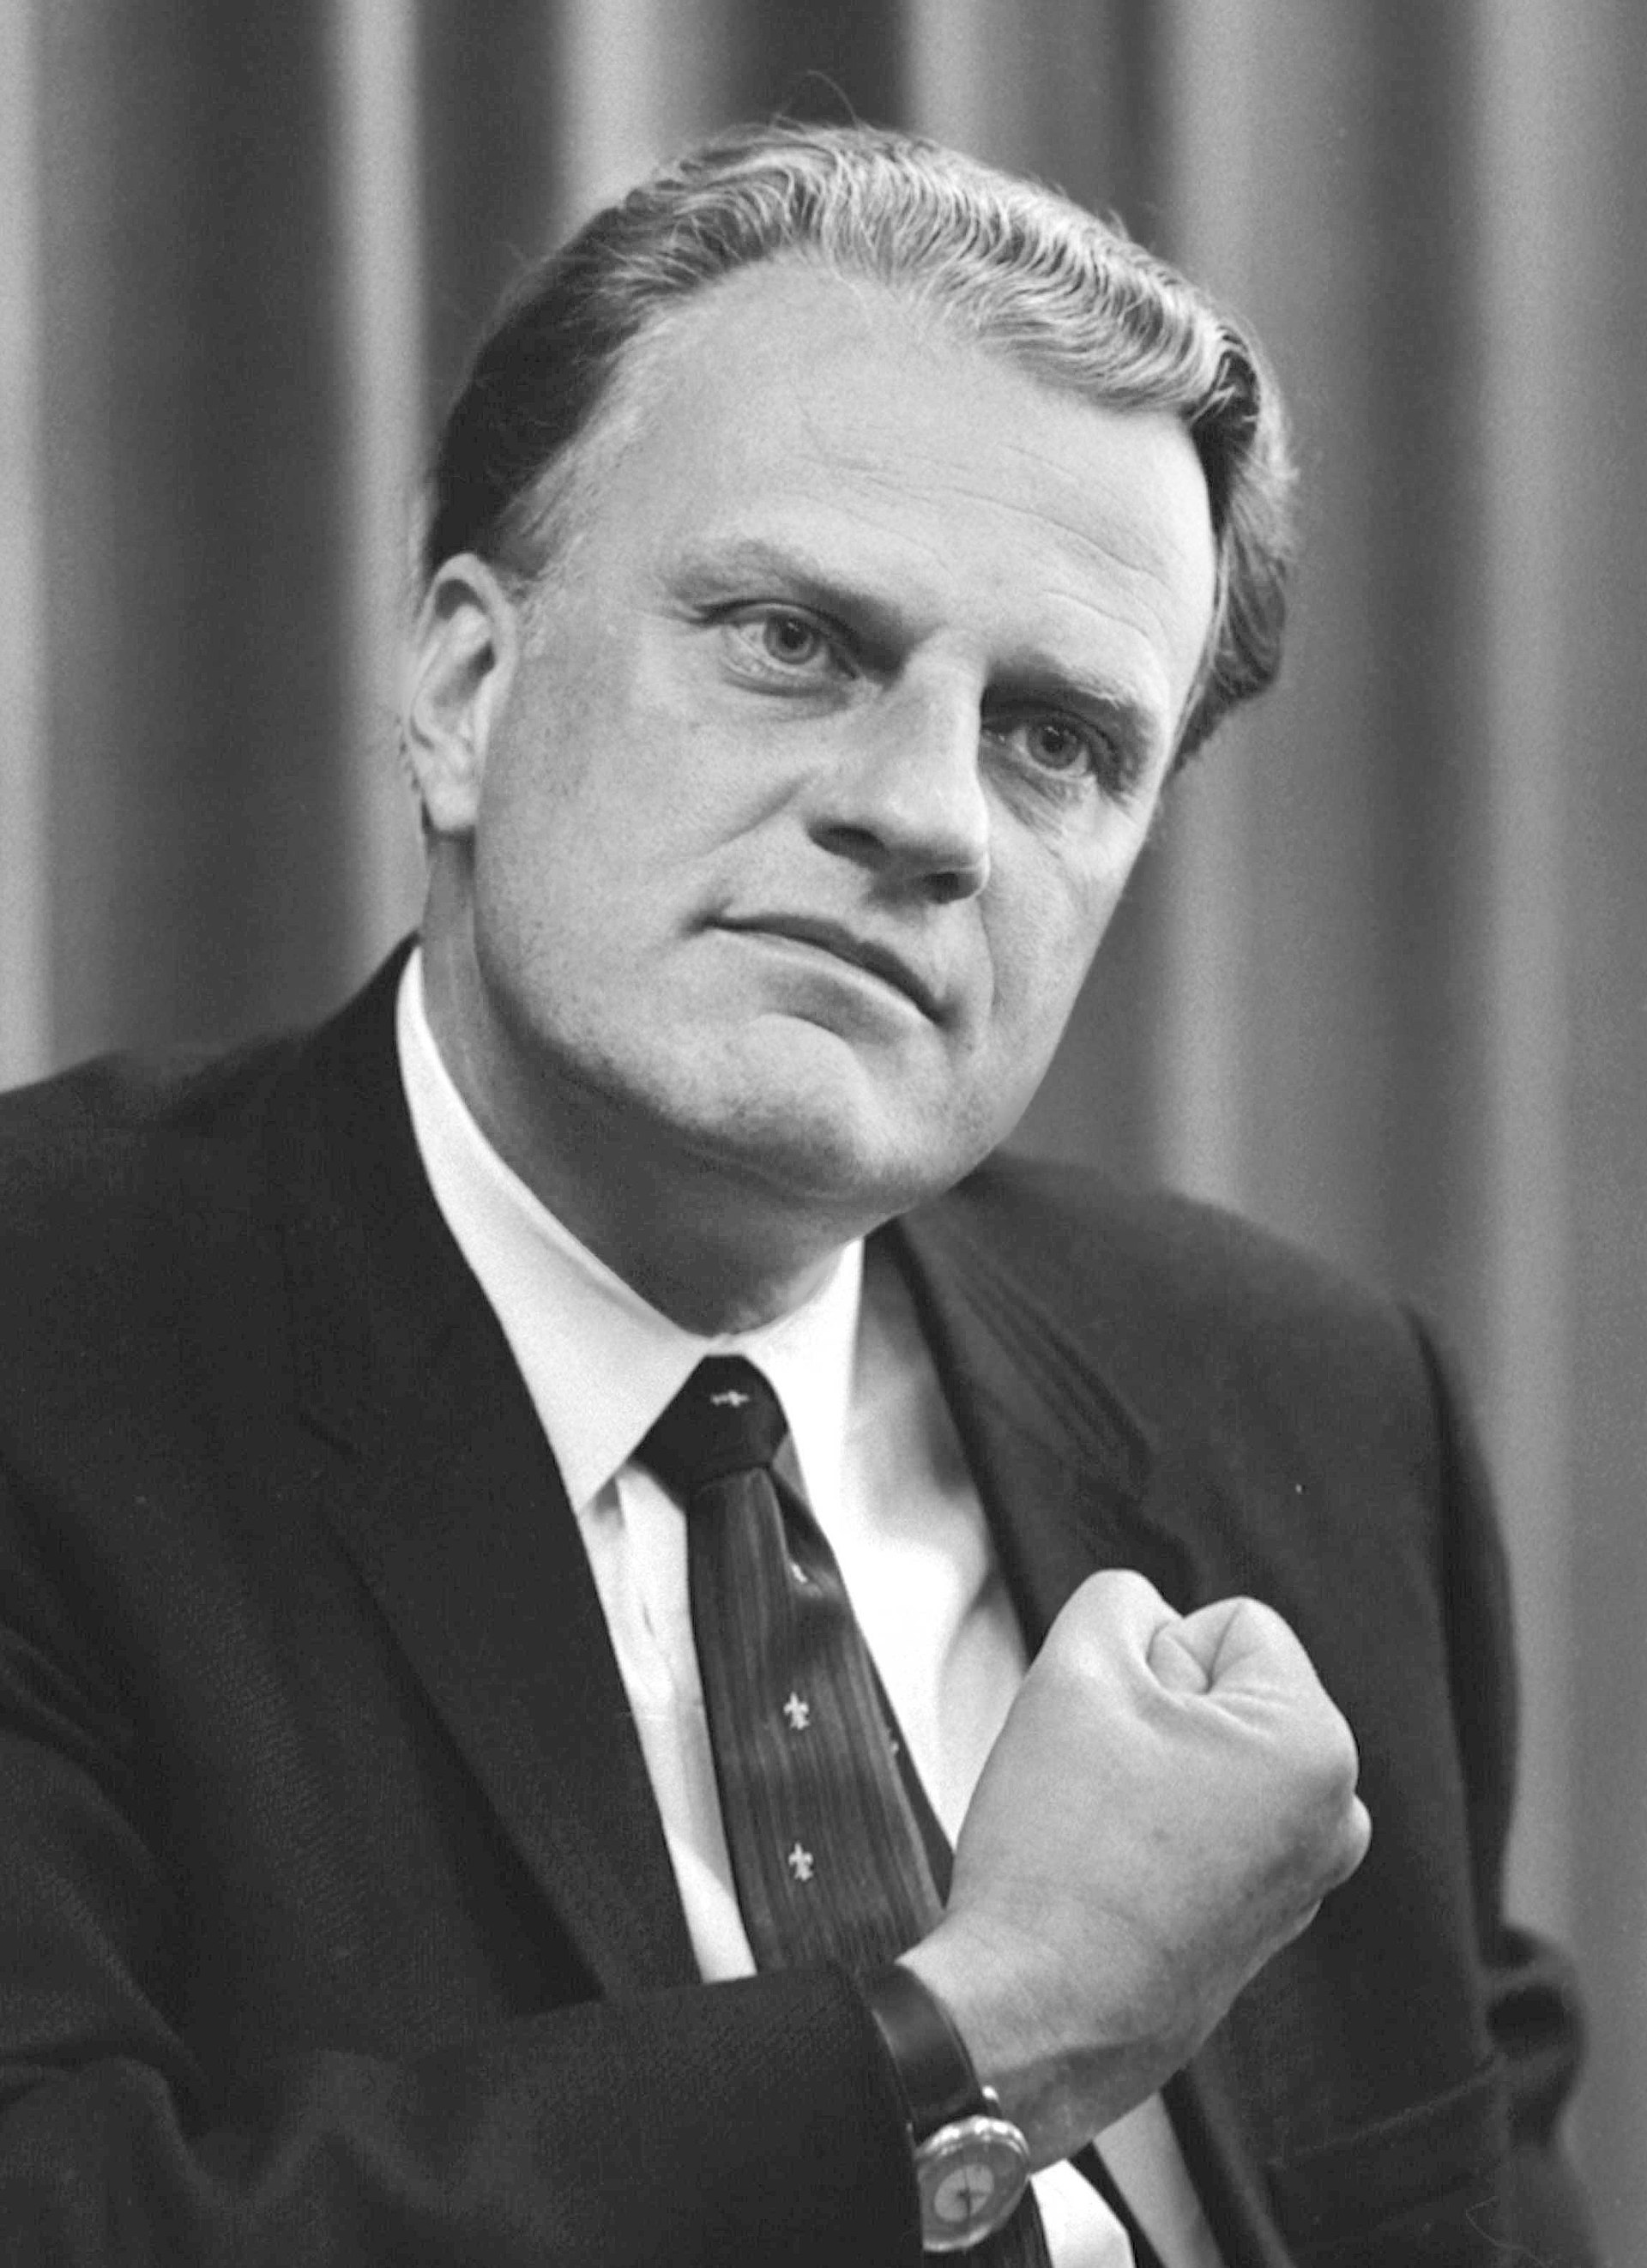 billy graham - photo #2